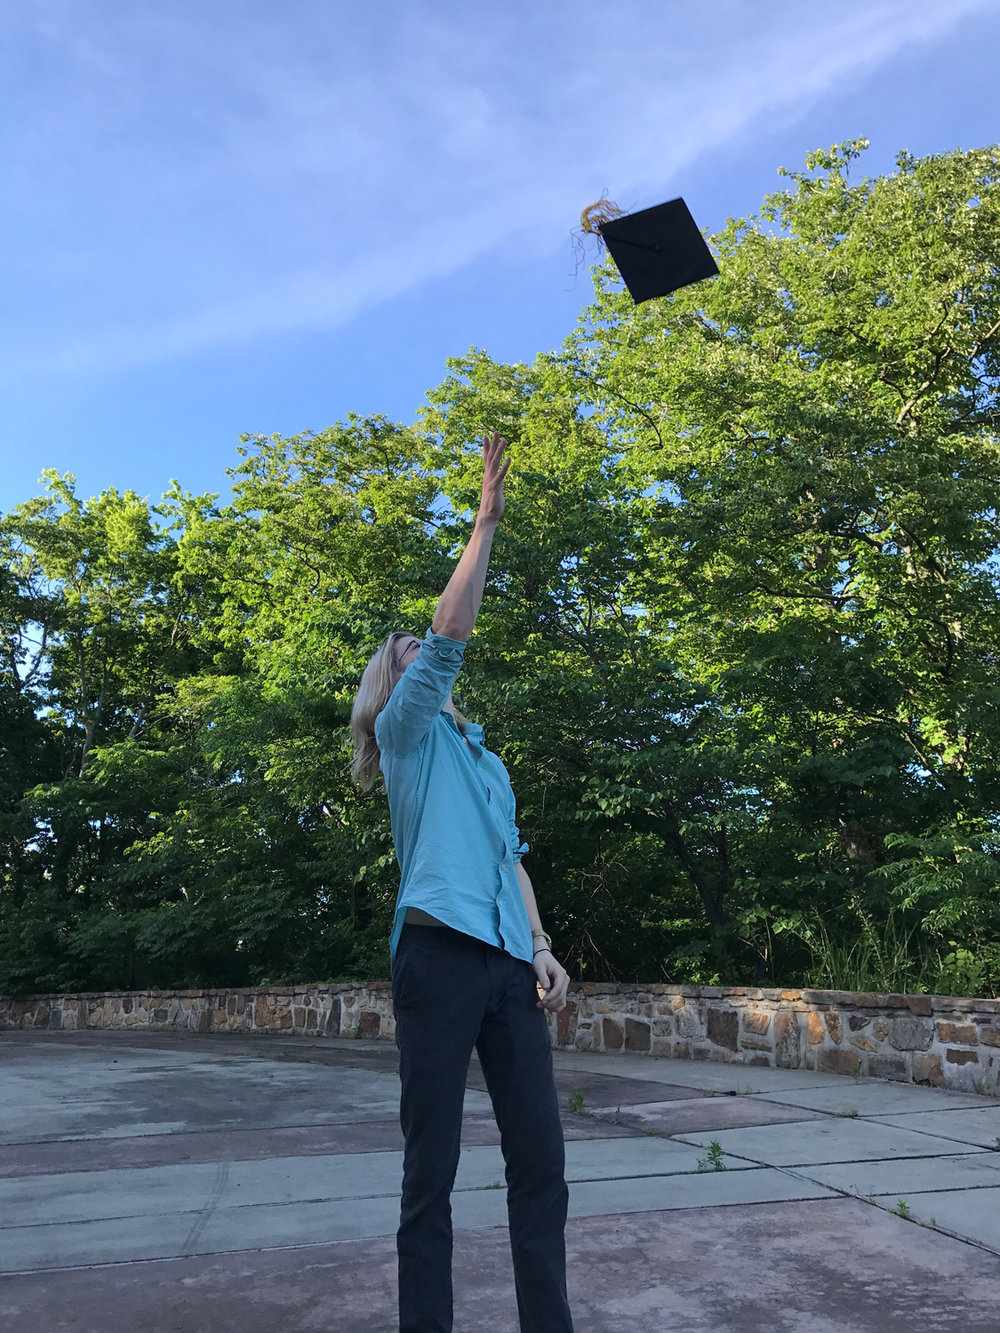 My oldest son feeling a little post-graduation joy.